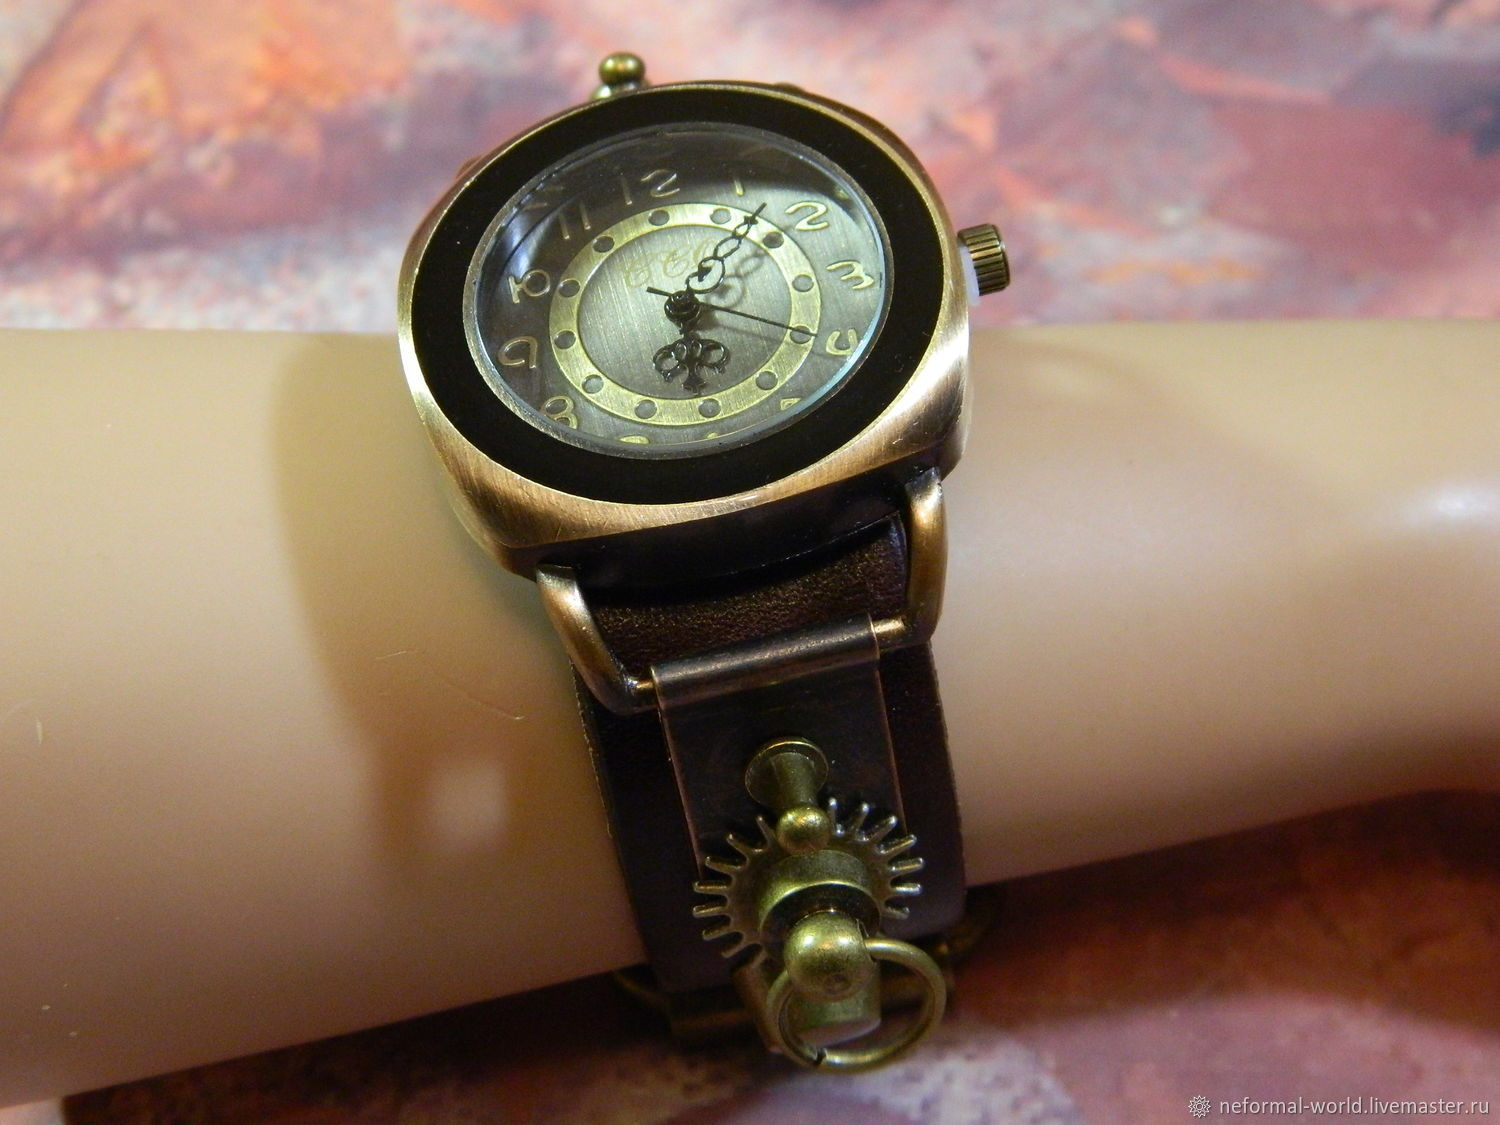 WATCH WRIST STEAMPUNK 'FUTURISM', Watches, Saratov,  Фото №1